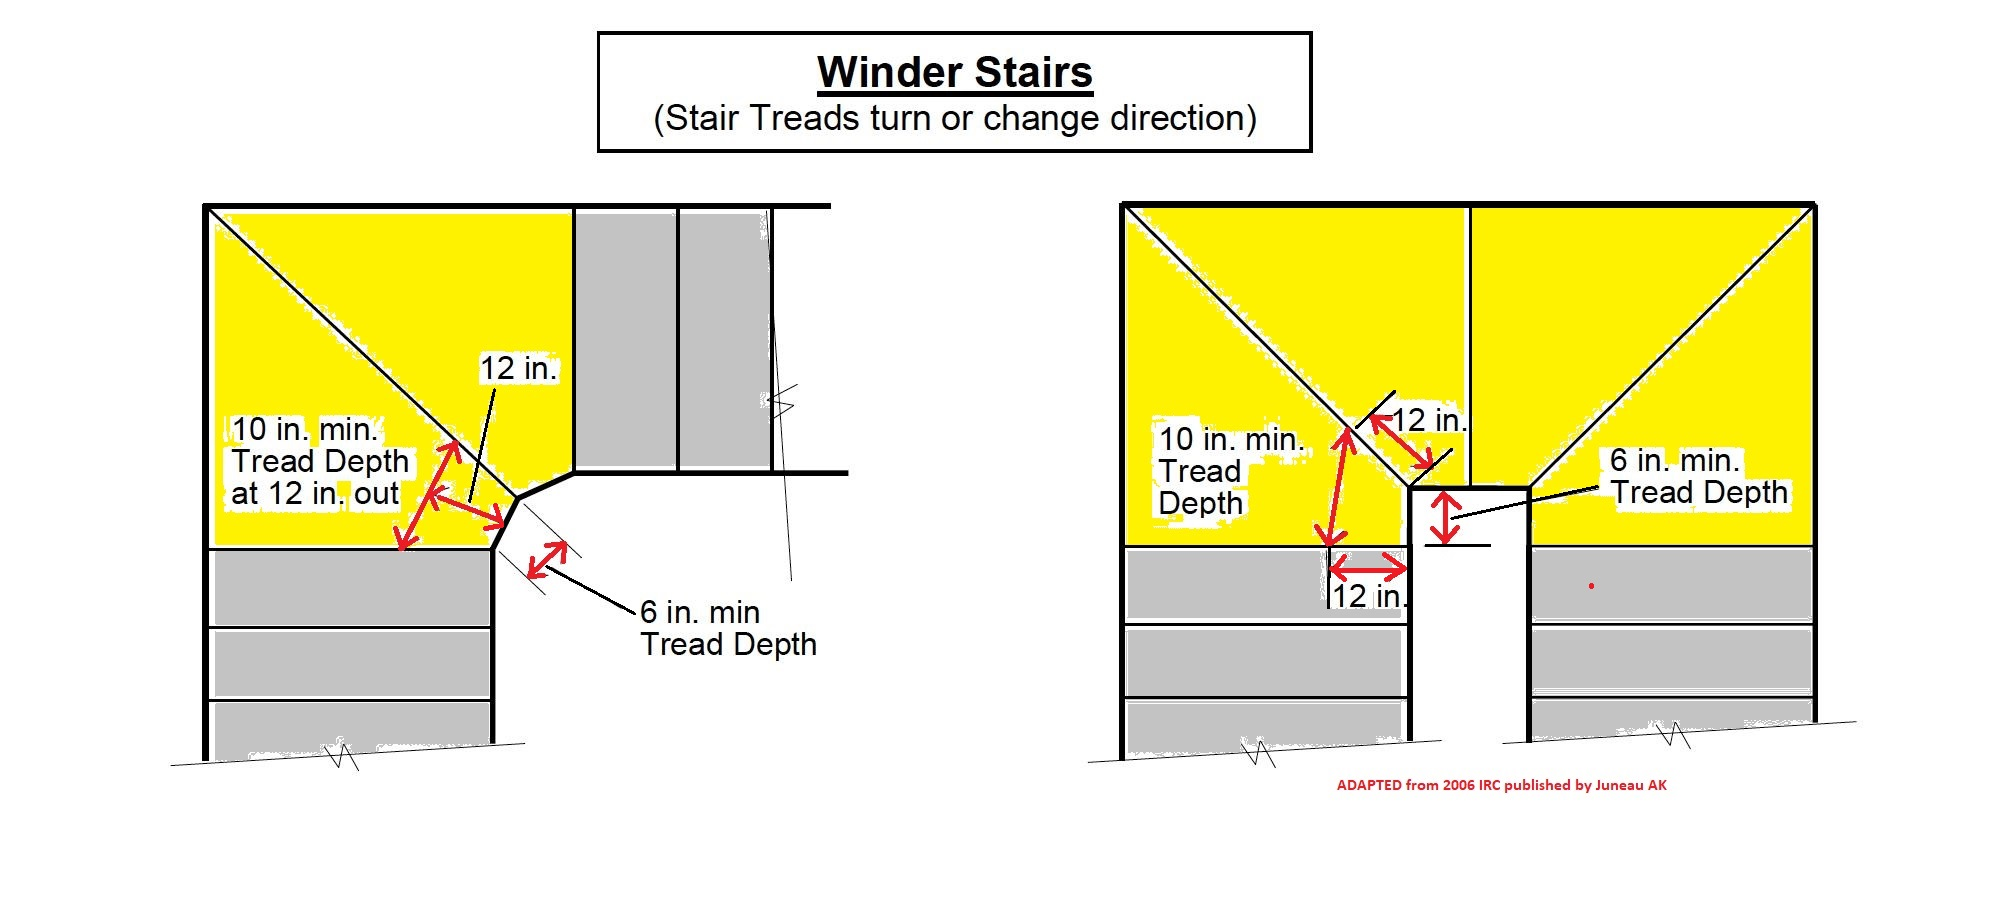 Winding or Turned Stairways: Guide to Stair Winders & Angled Stairs